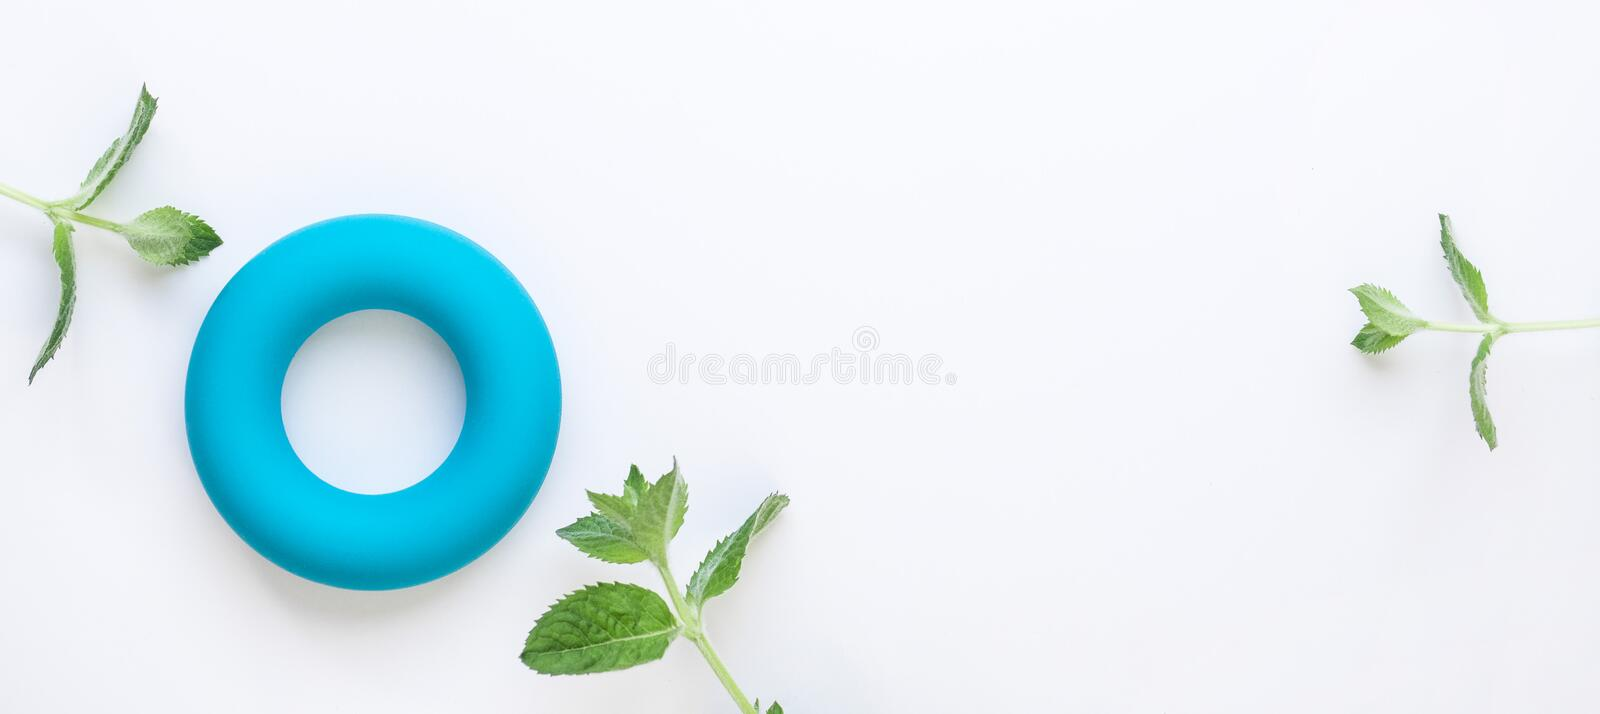 Zero calories and zero waste minimalistic concept background. Blue torus and fresh green mint leaves on white background. Flat lay. Copy space royalty free stock photography